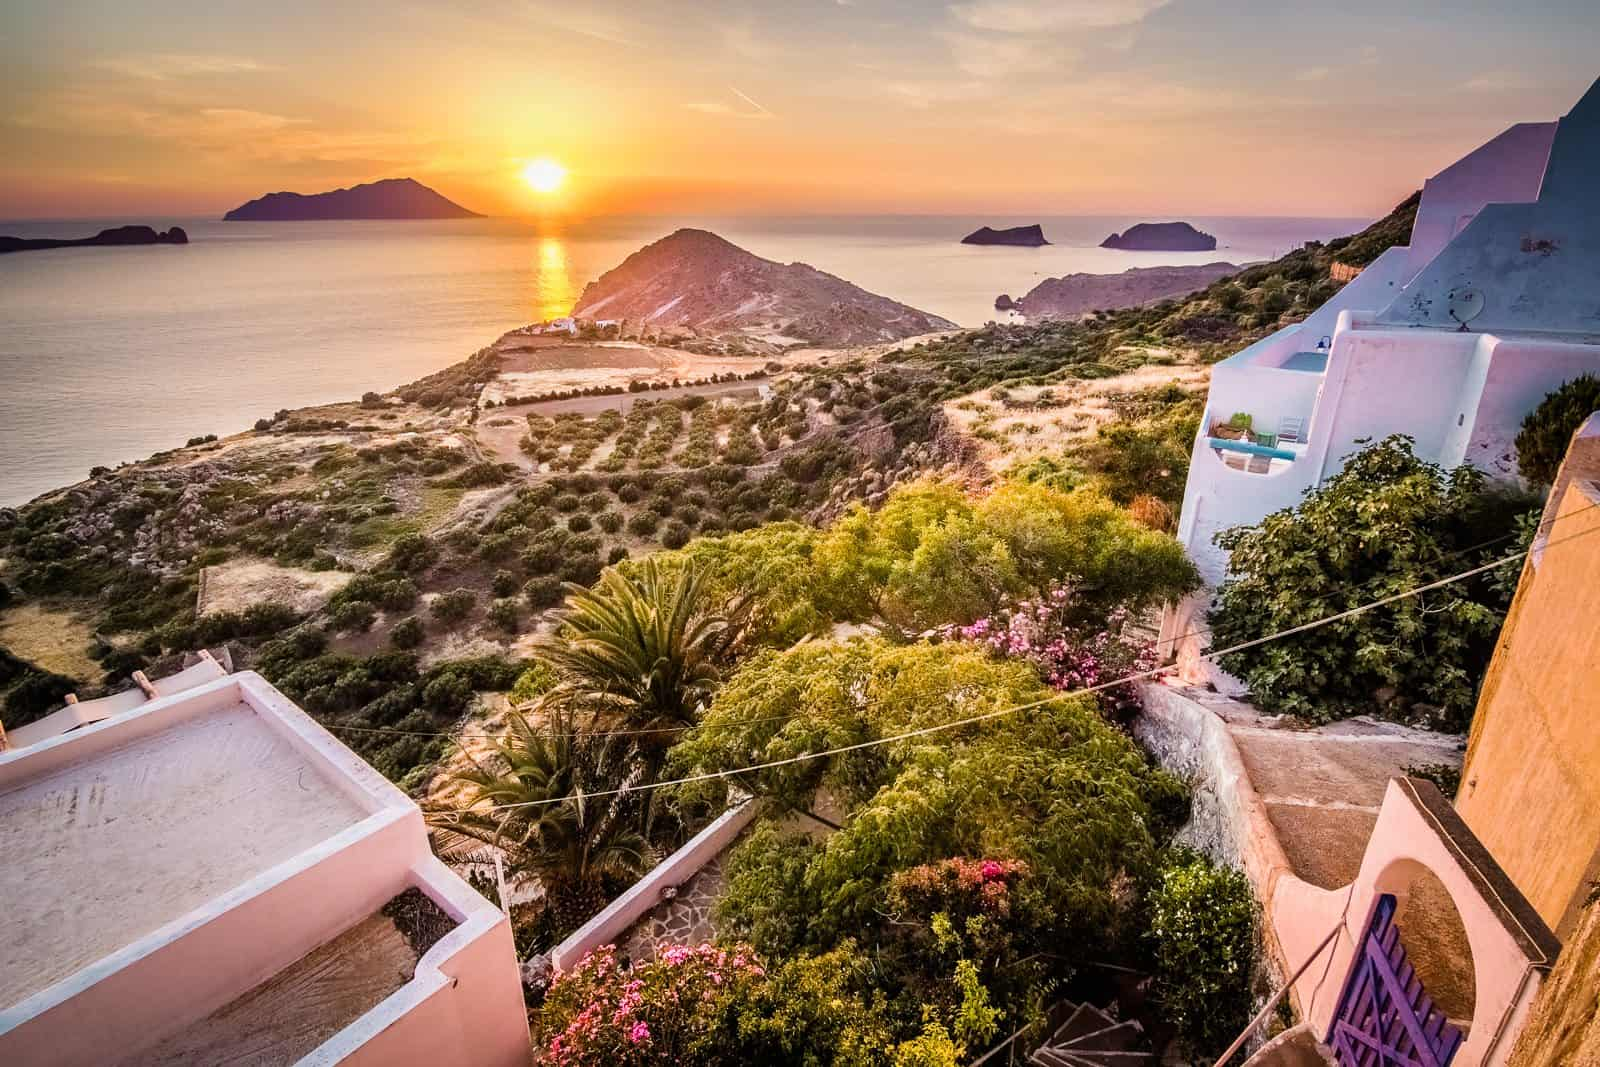 Sunset on the Island of Milos, Pictures of Greece